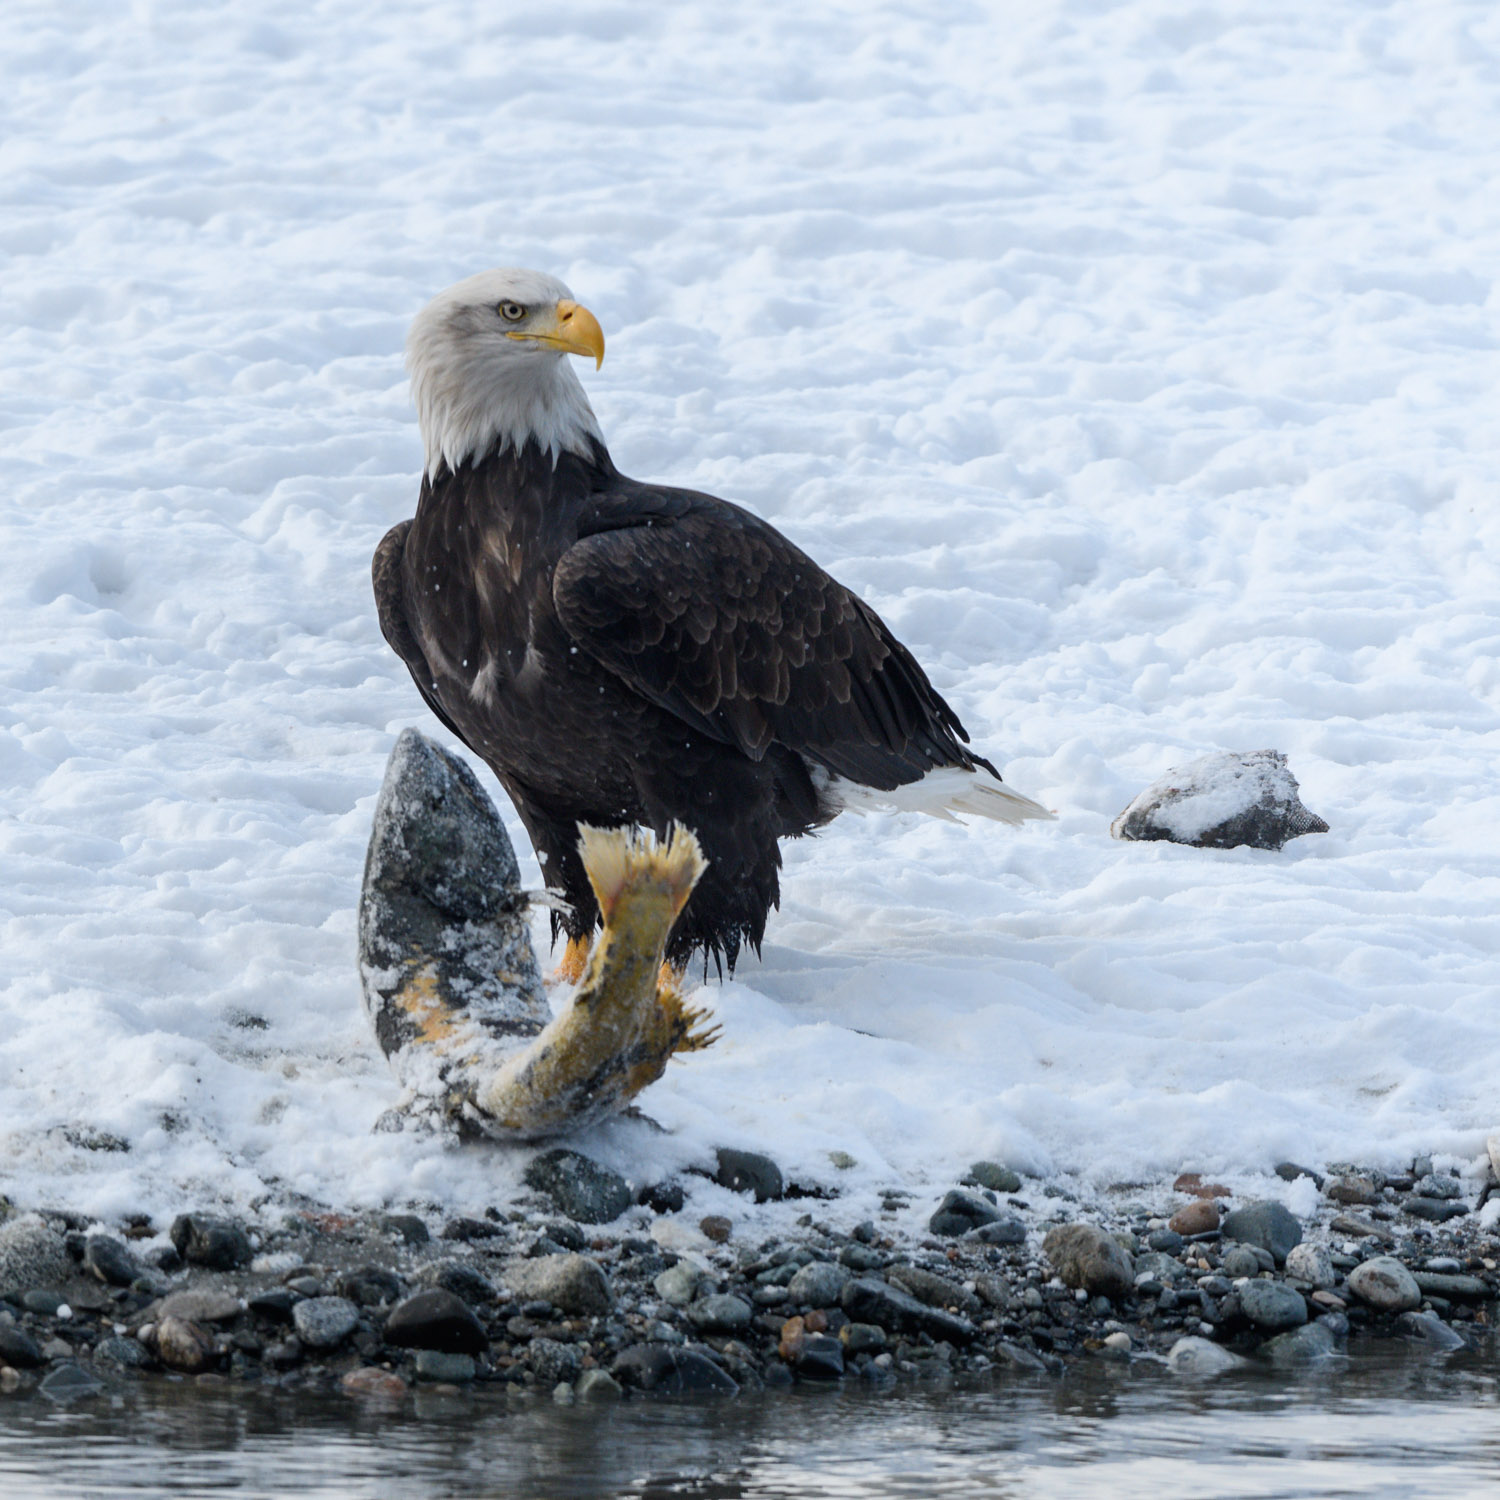 Live salmon pulled ashore by Bald Eagle - Nov. 2017